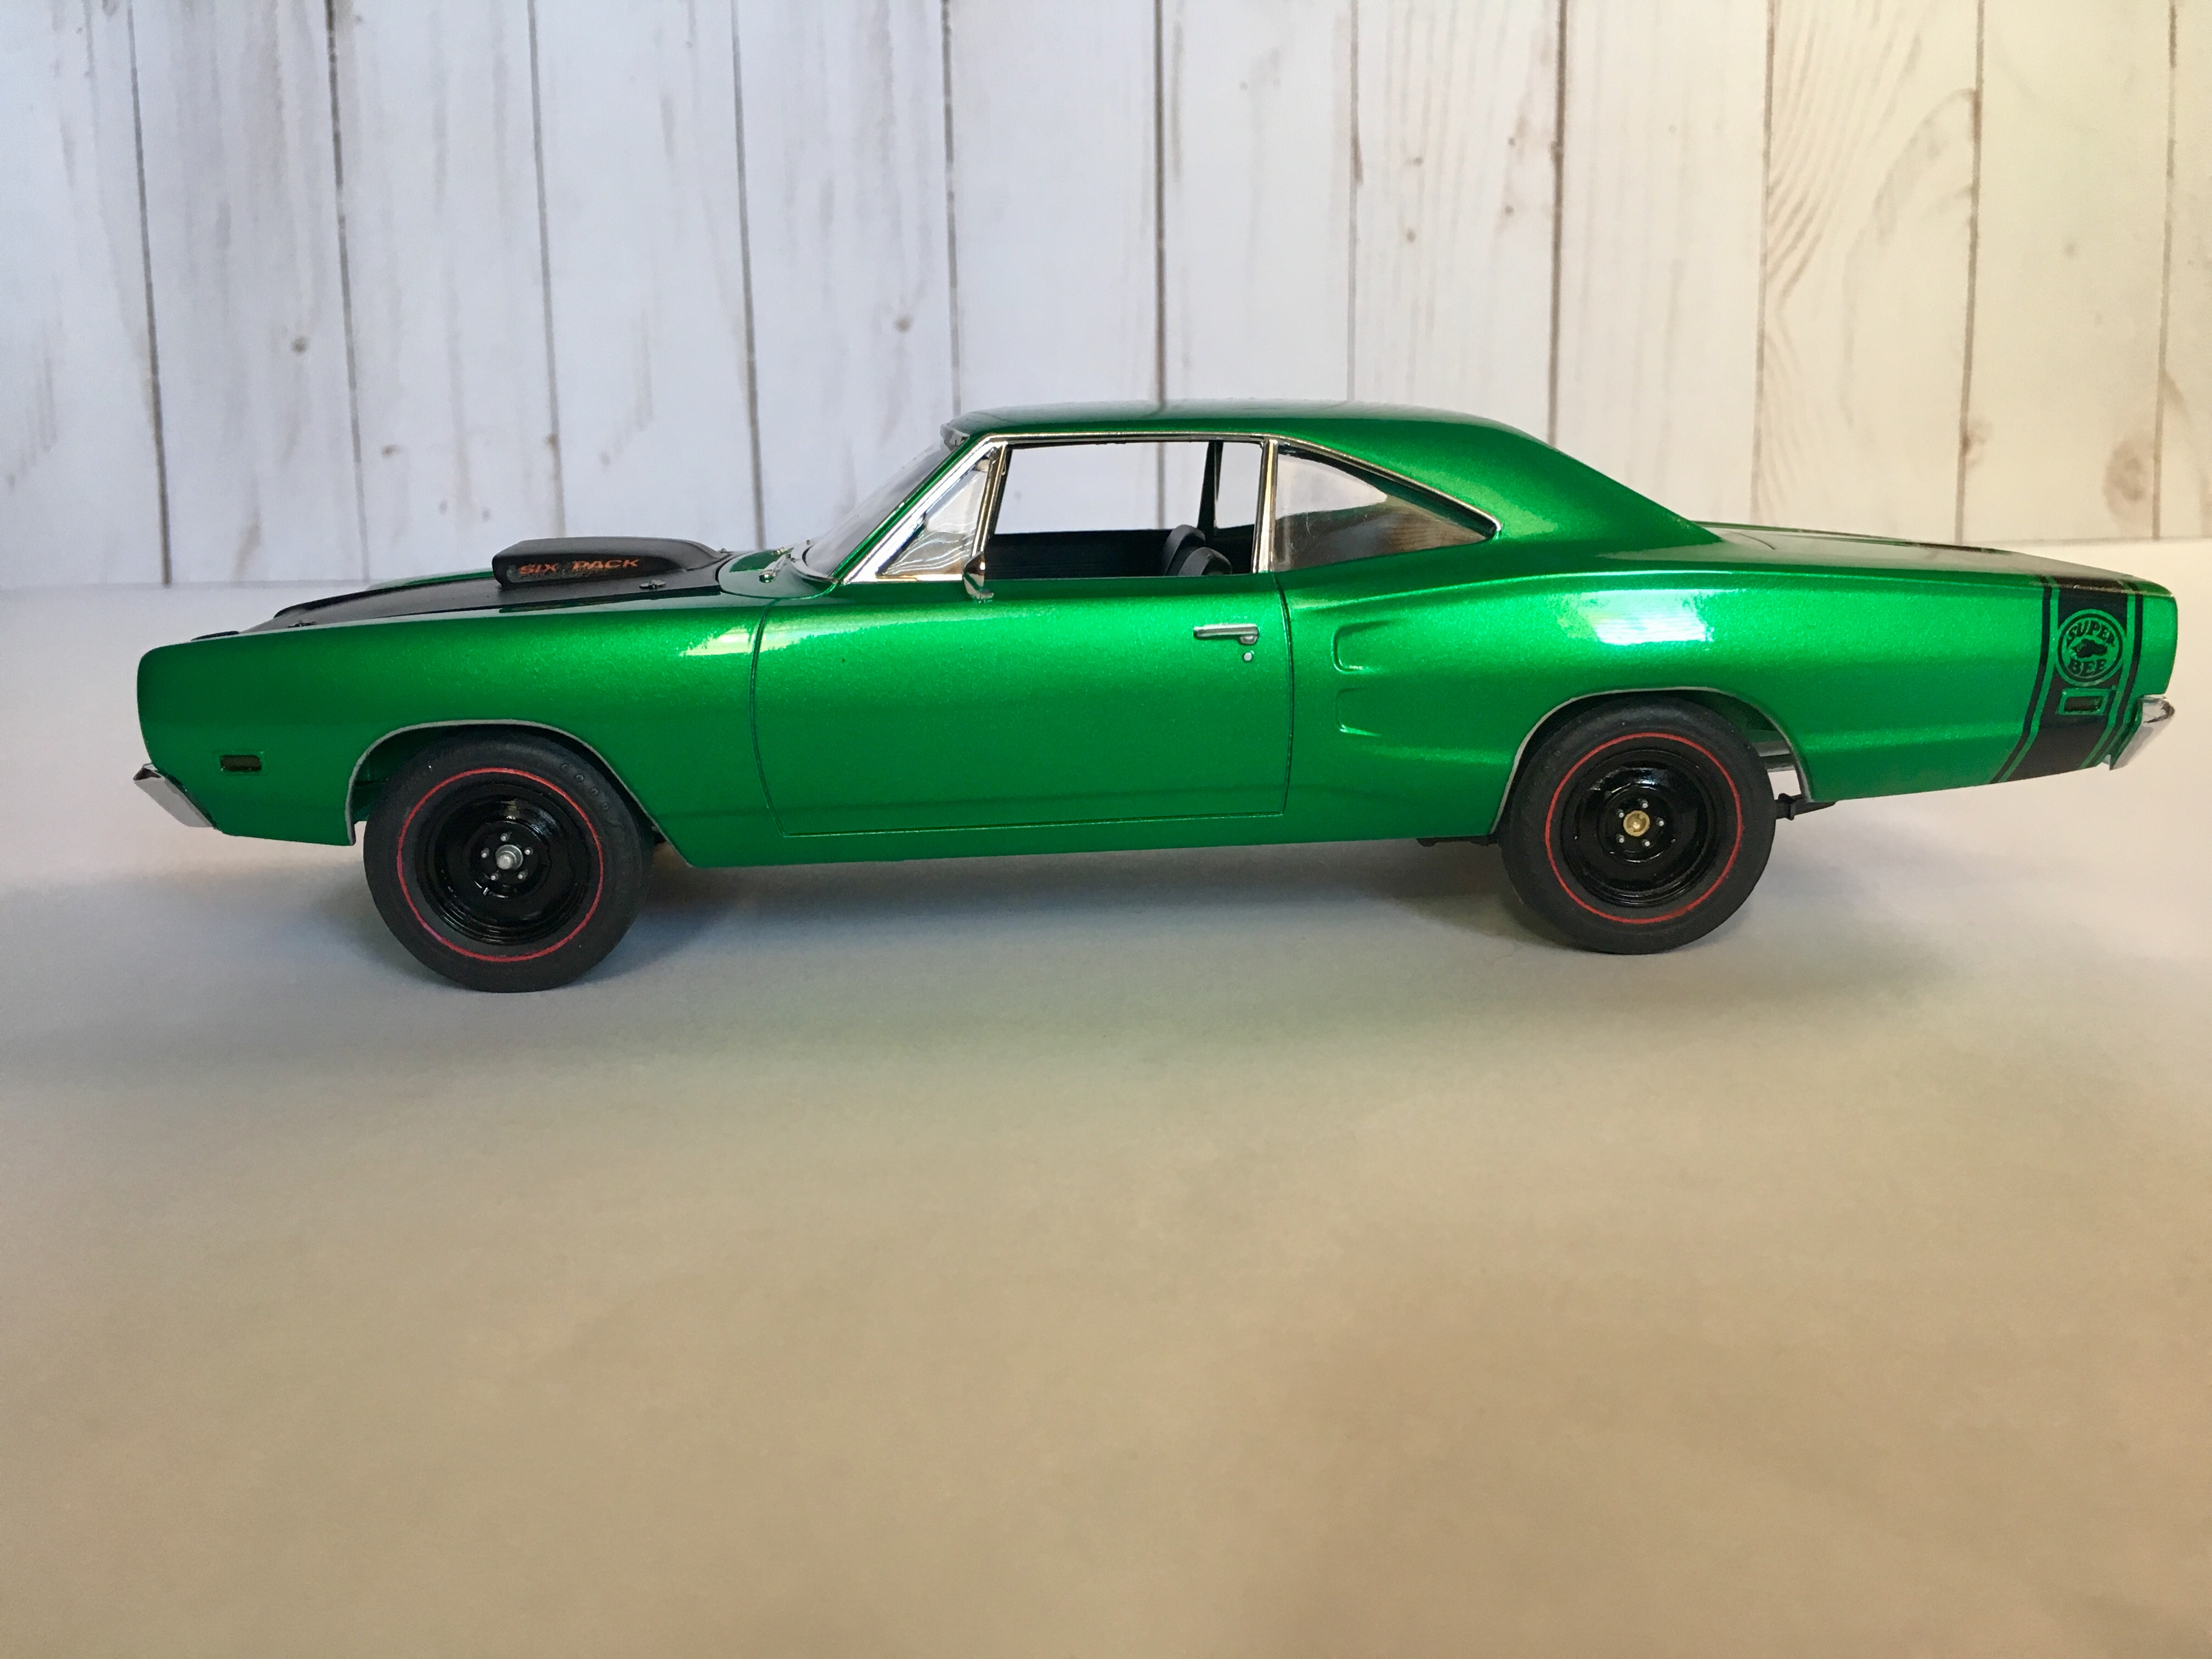 1969 1/2 A12 Super Bee - Under Glass - Model Cars Magazine Forum